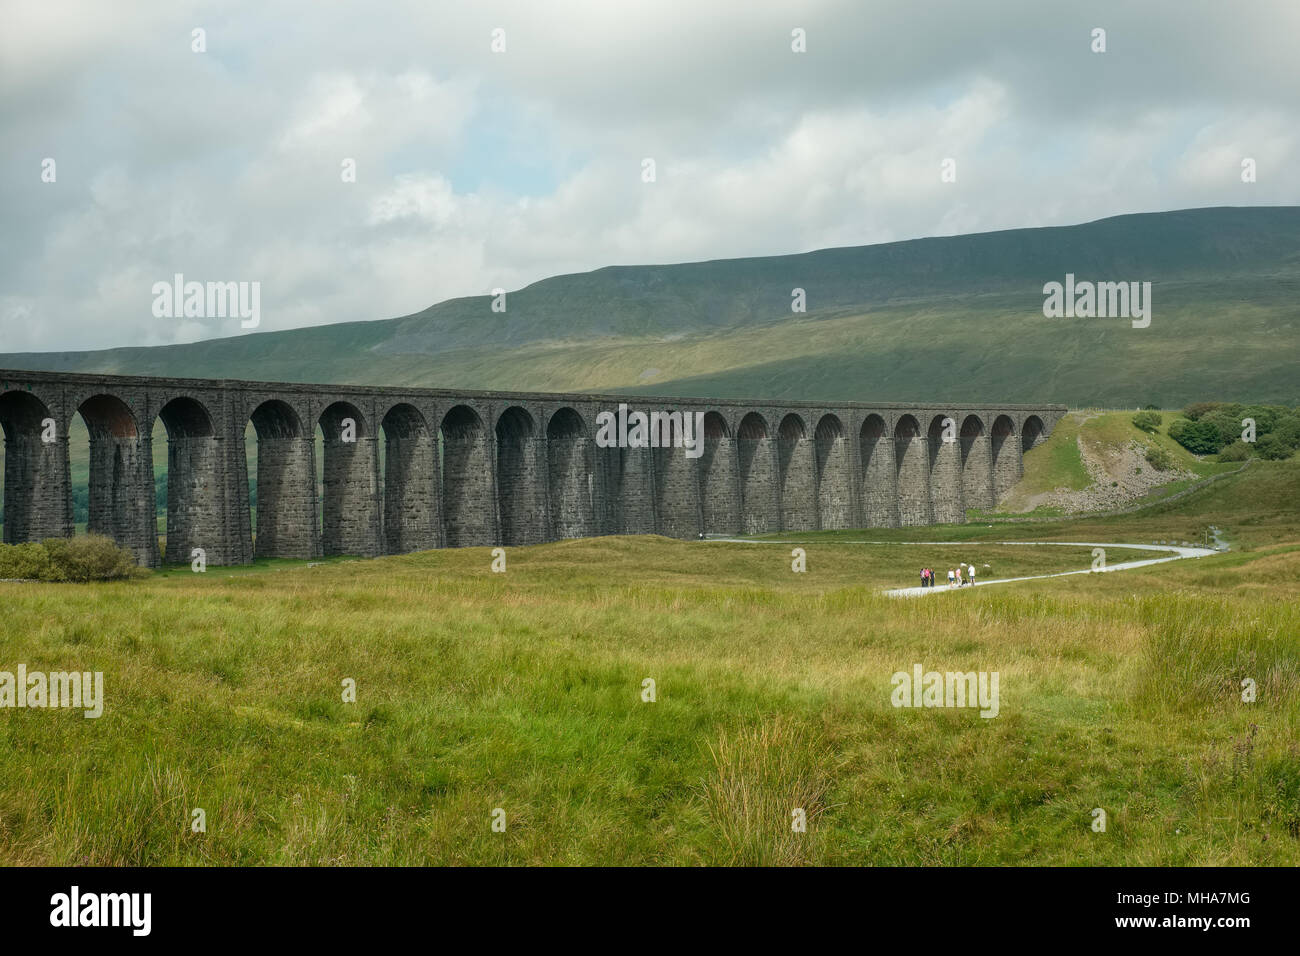 Ribblehead Viaduct in the Yorkshire Dales in England - Stock Image